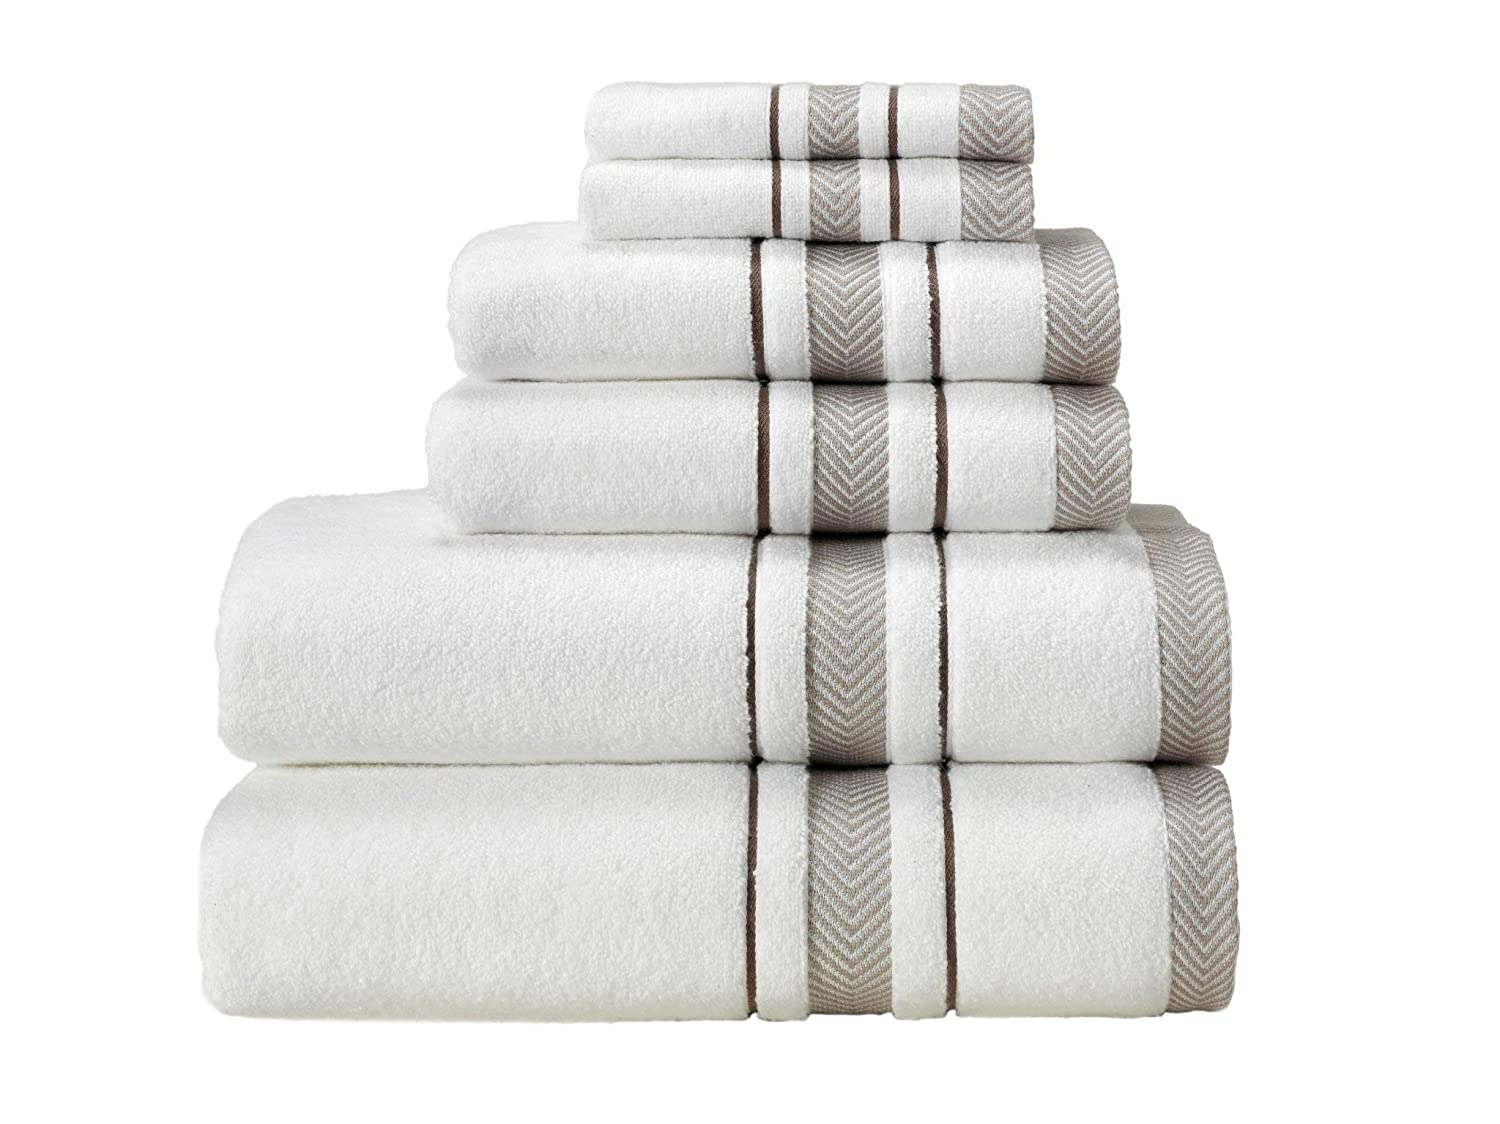 Enchante Home – Luxury Rapid Drying Bath Towels